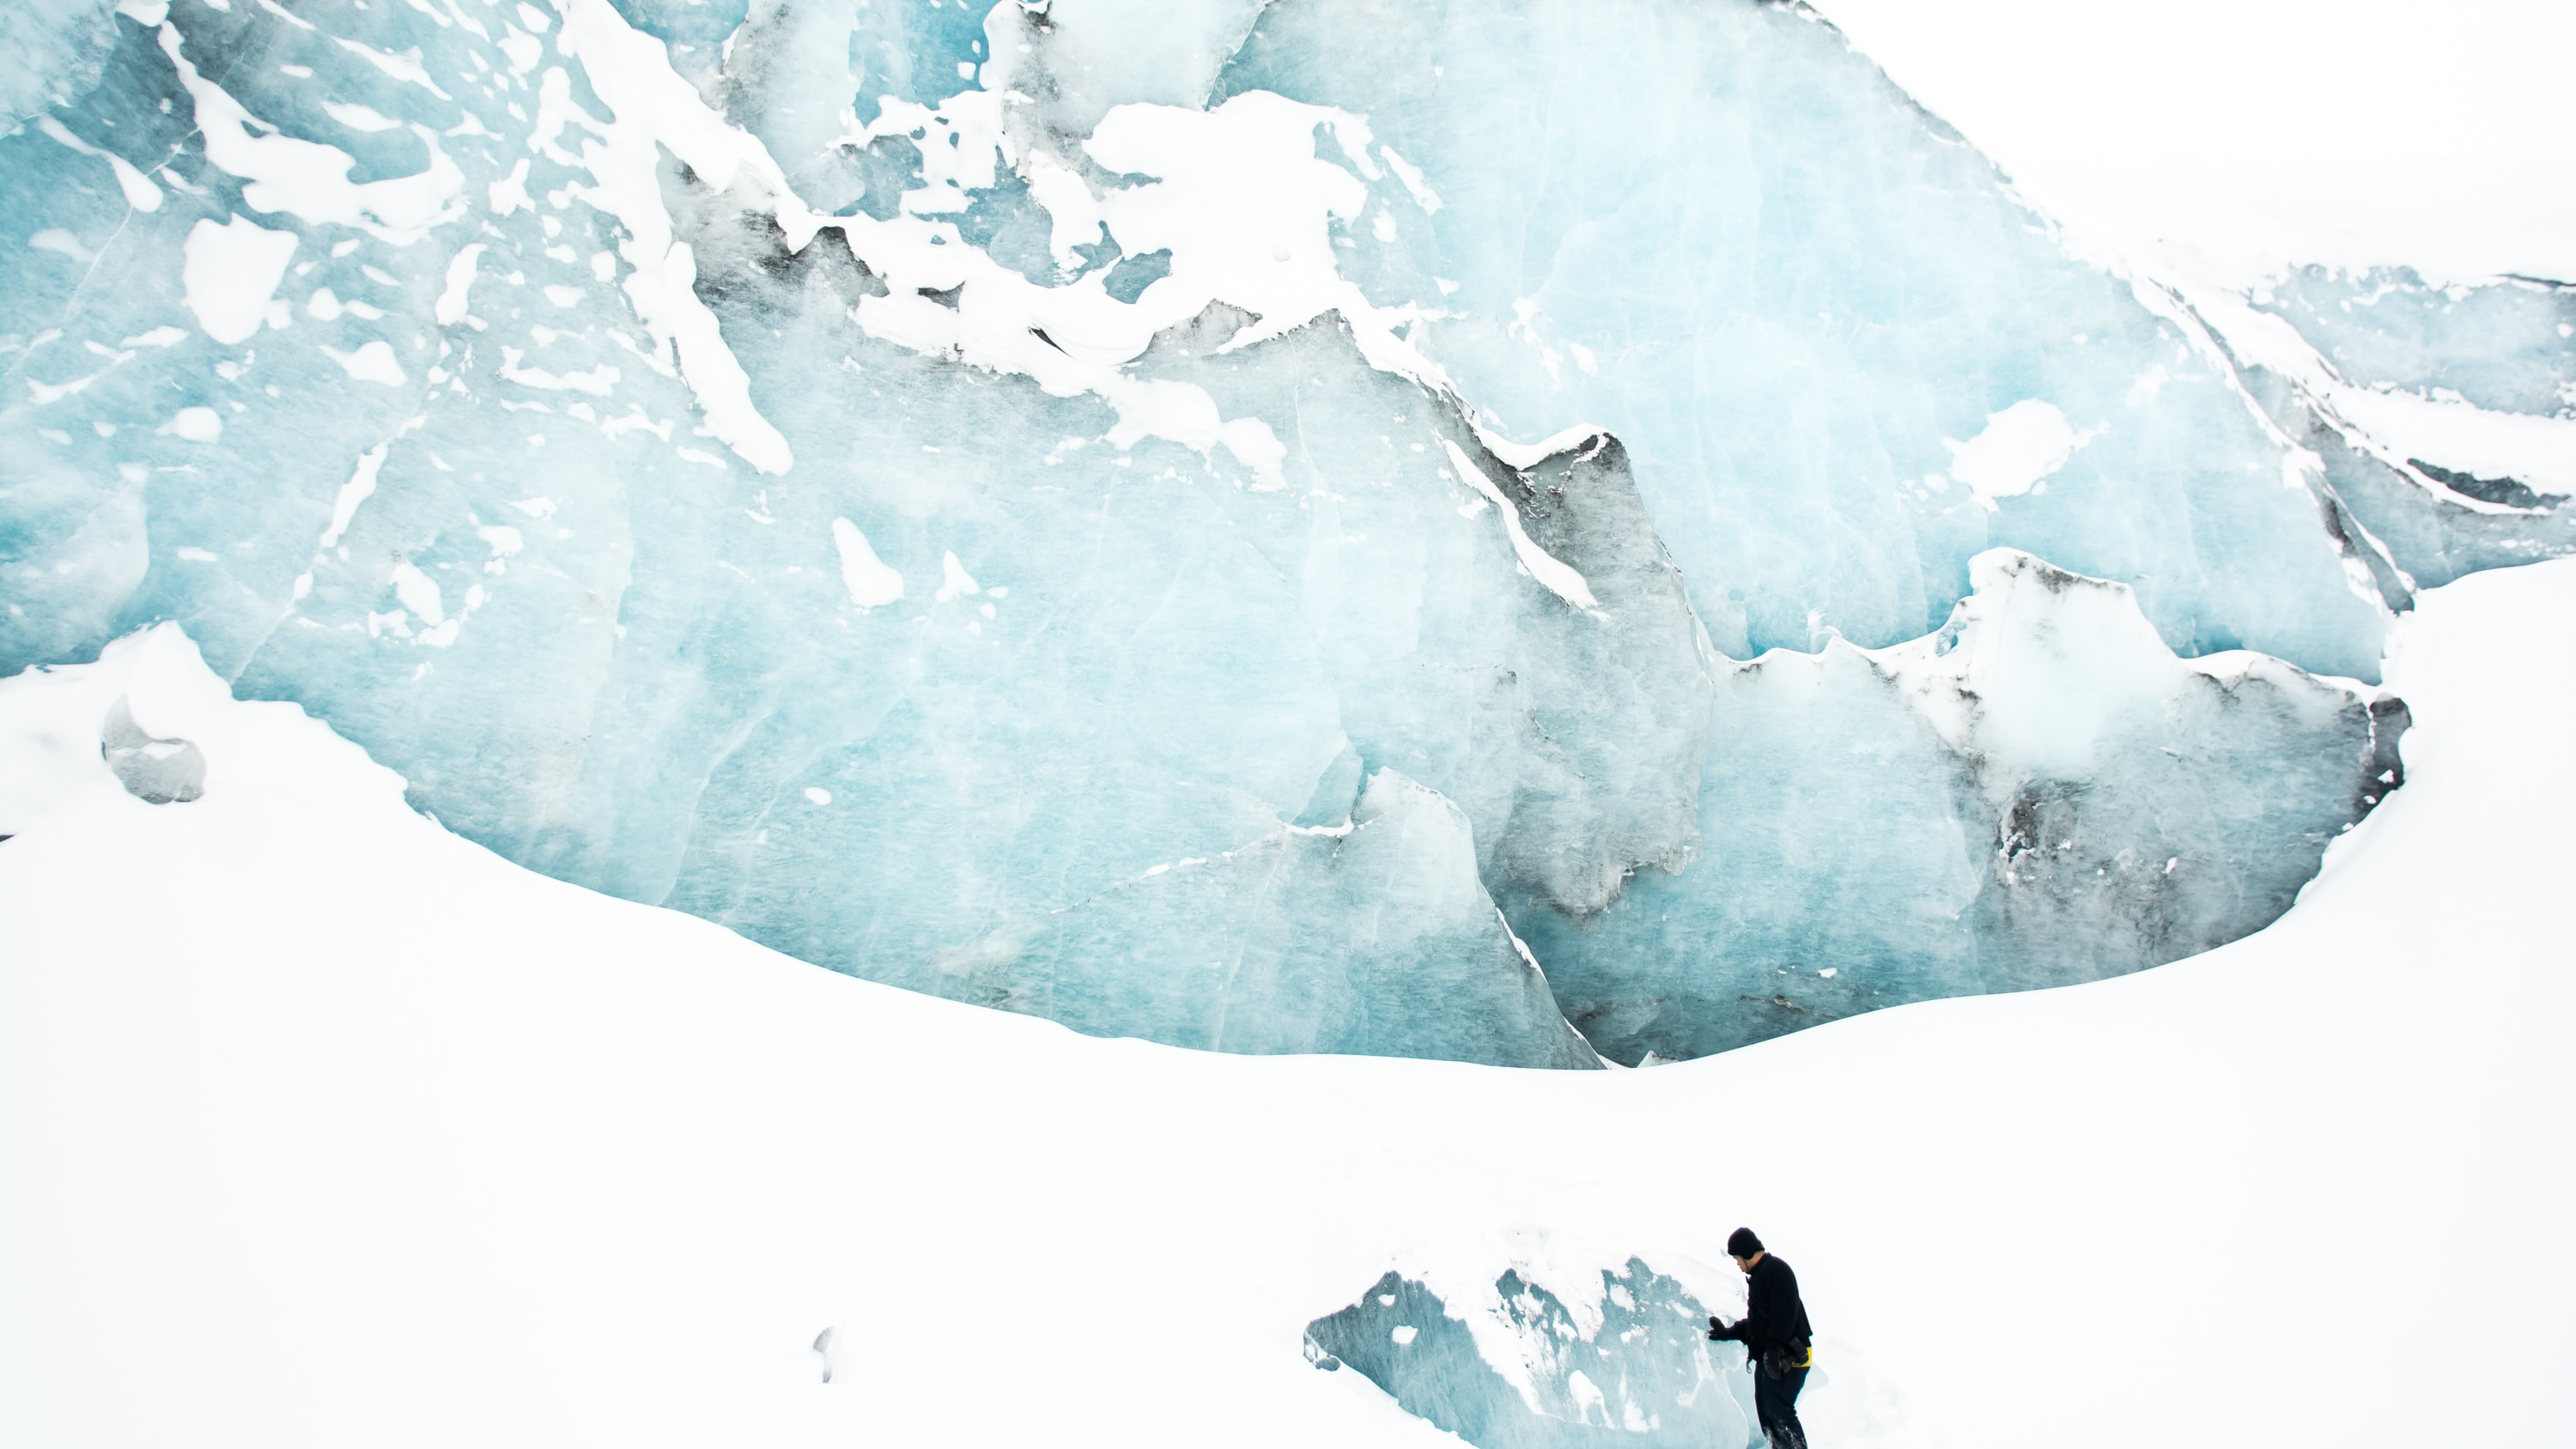 person standing on snow field near mountain